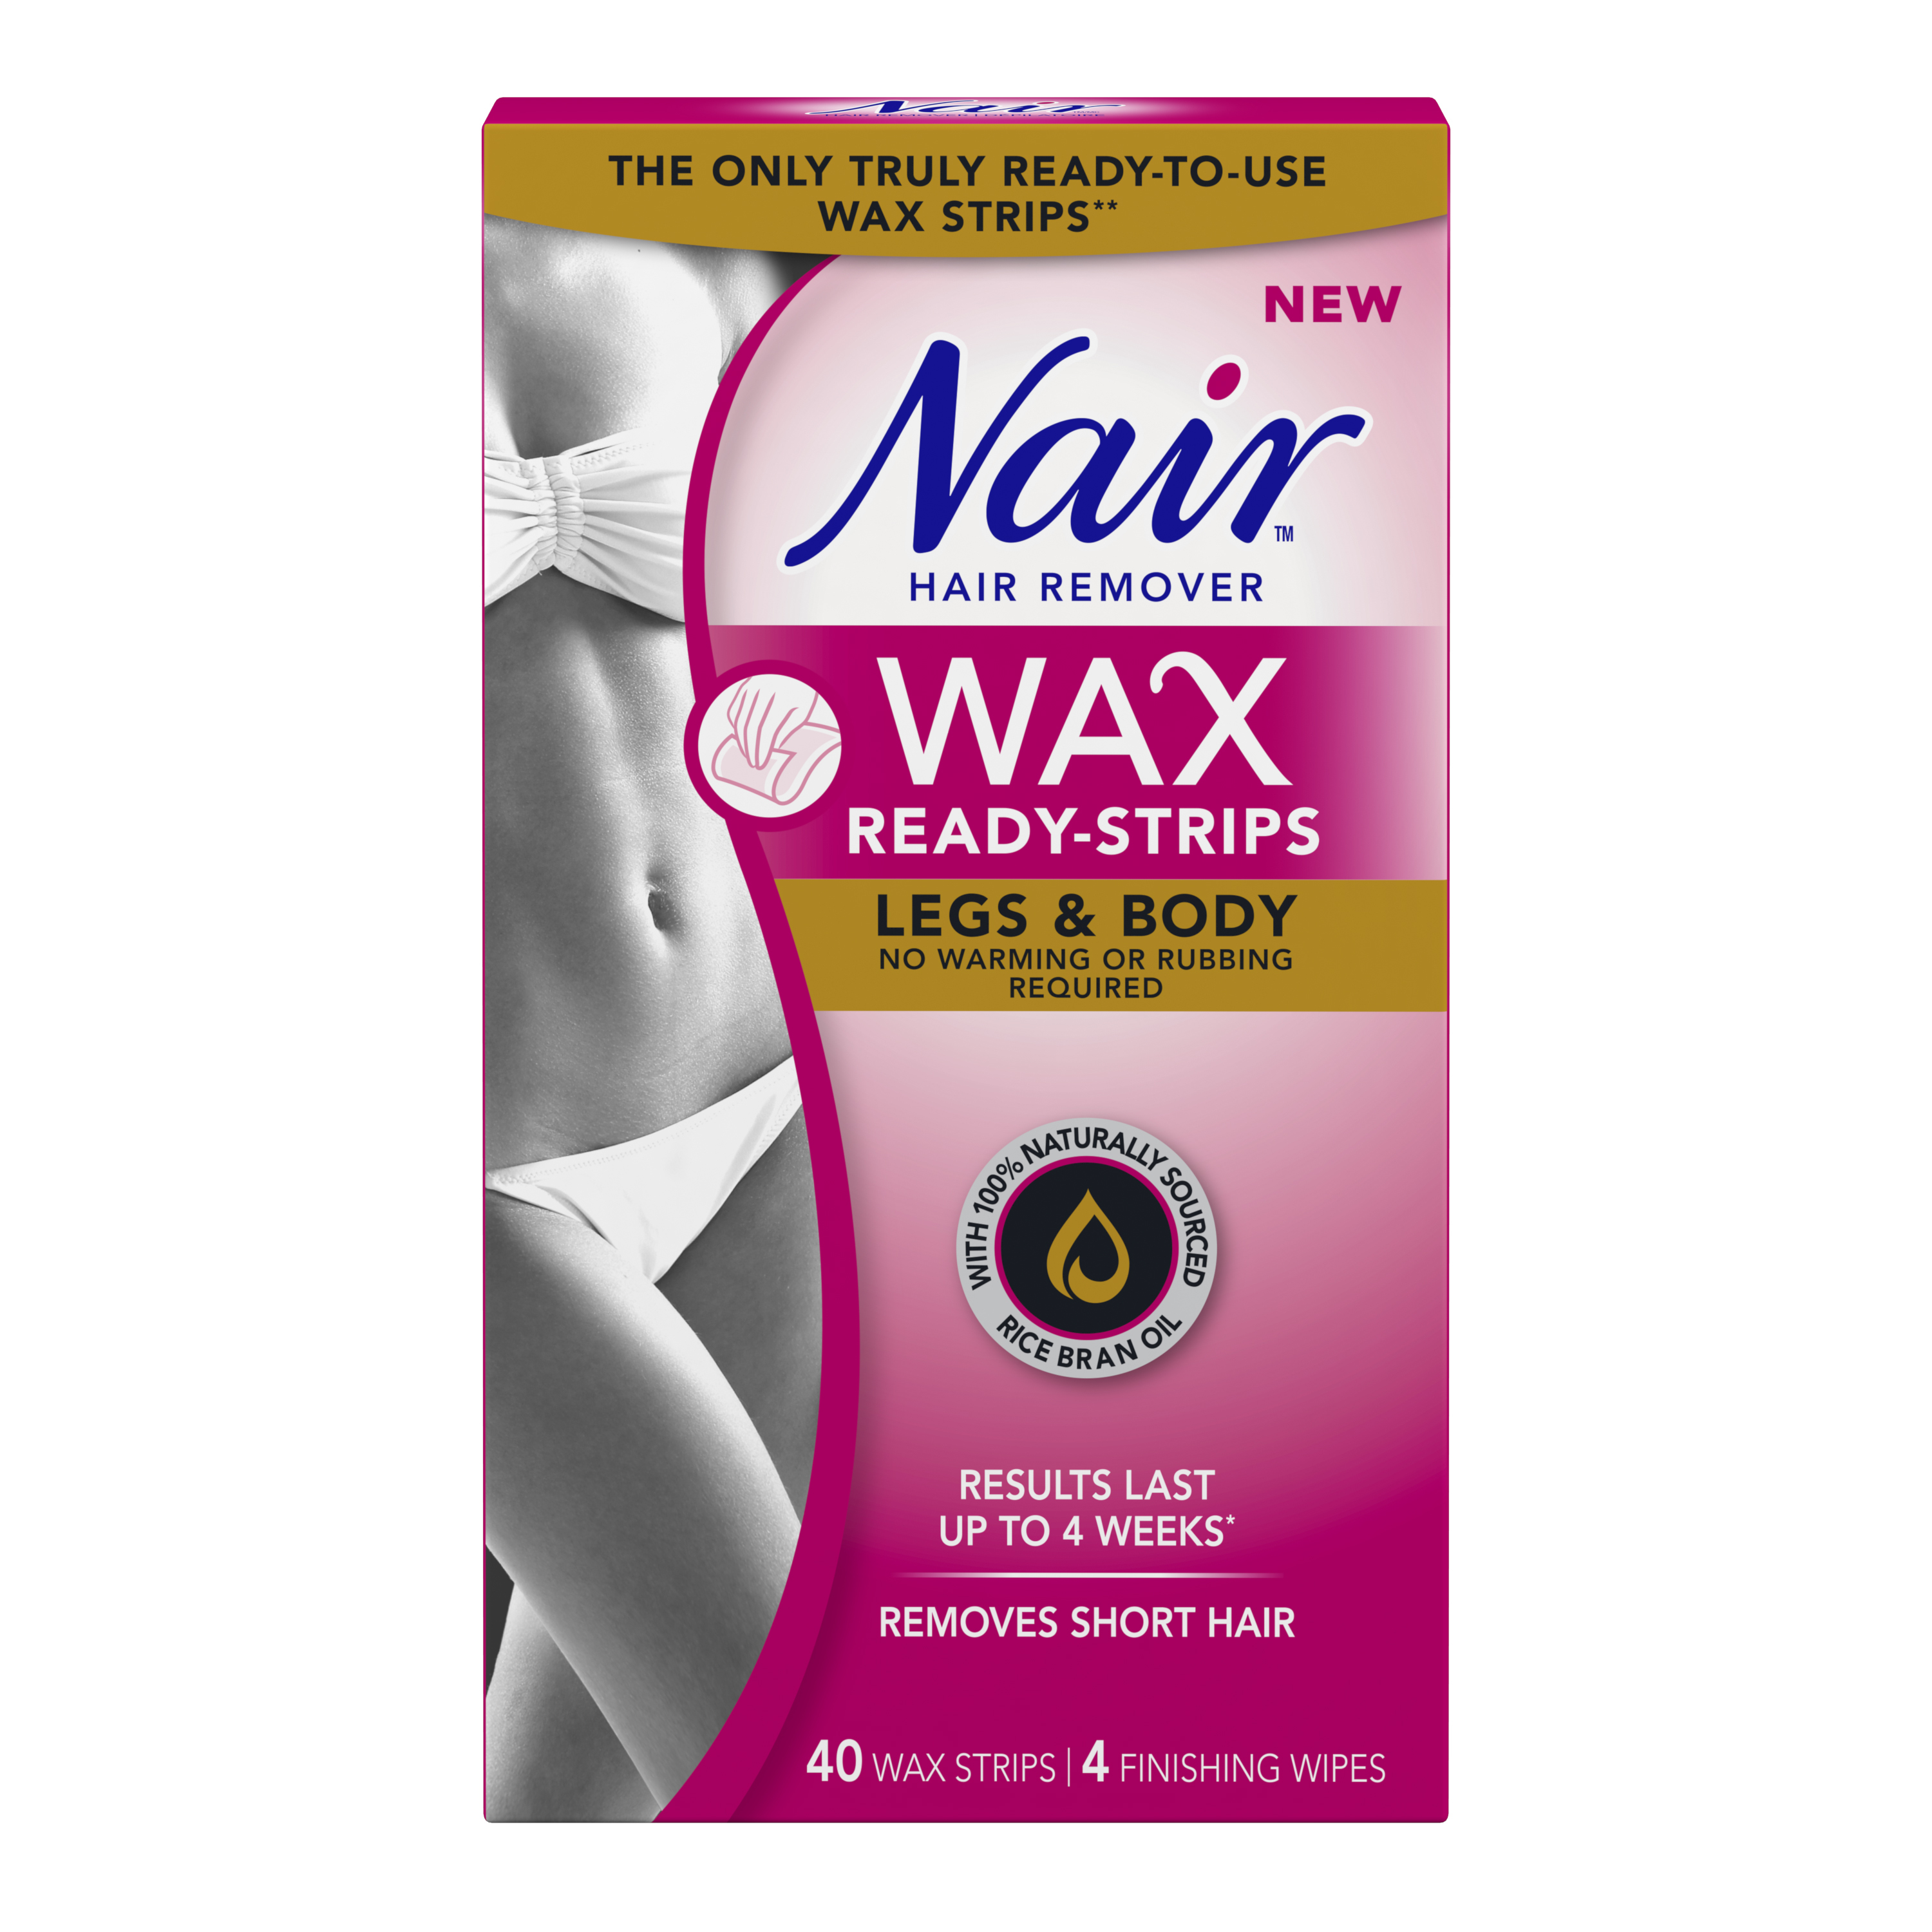 Nair Wax Ready Strips Legs Body Reviews In Hair Removal